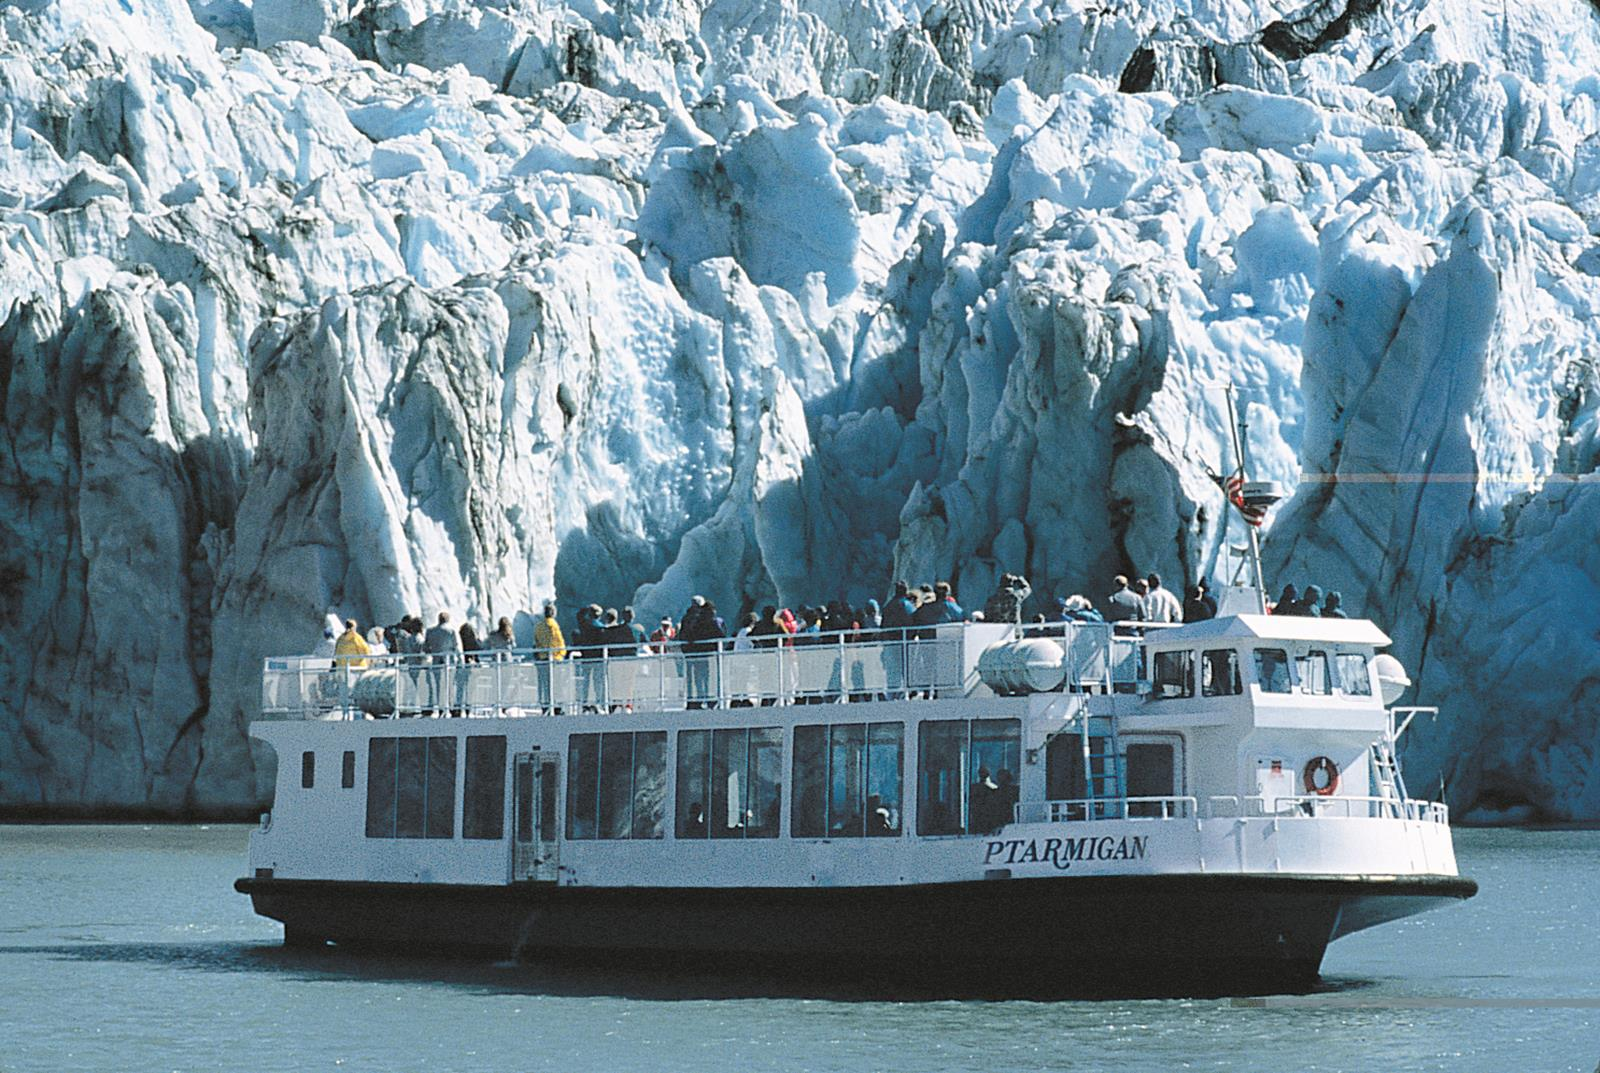 Ptarmigan a boat that can be used to travel the Alaskan Marine Highway. Credit: Premier Travel Media.